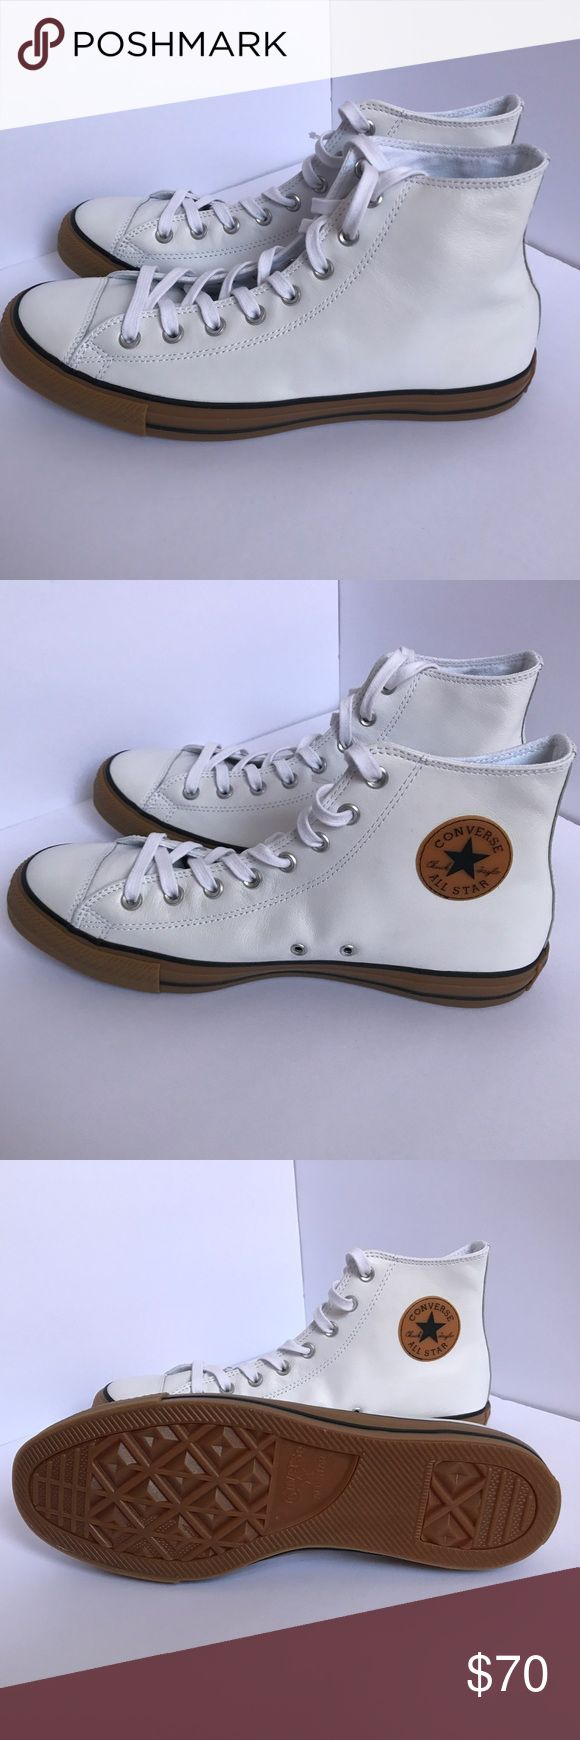 Leather hi top converse Chuck Taylor Brand new leather chucks, size 11 Converse Shoes Sneakers